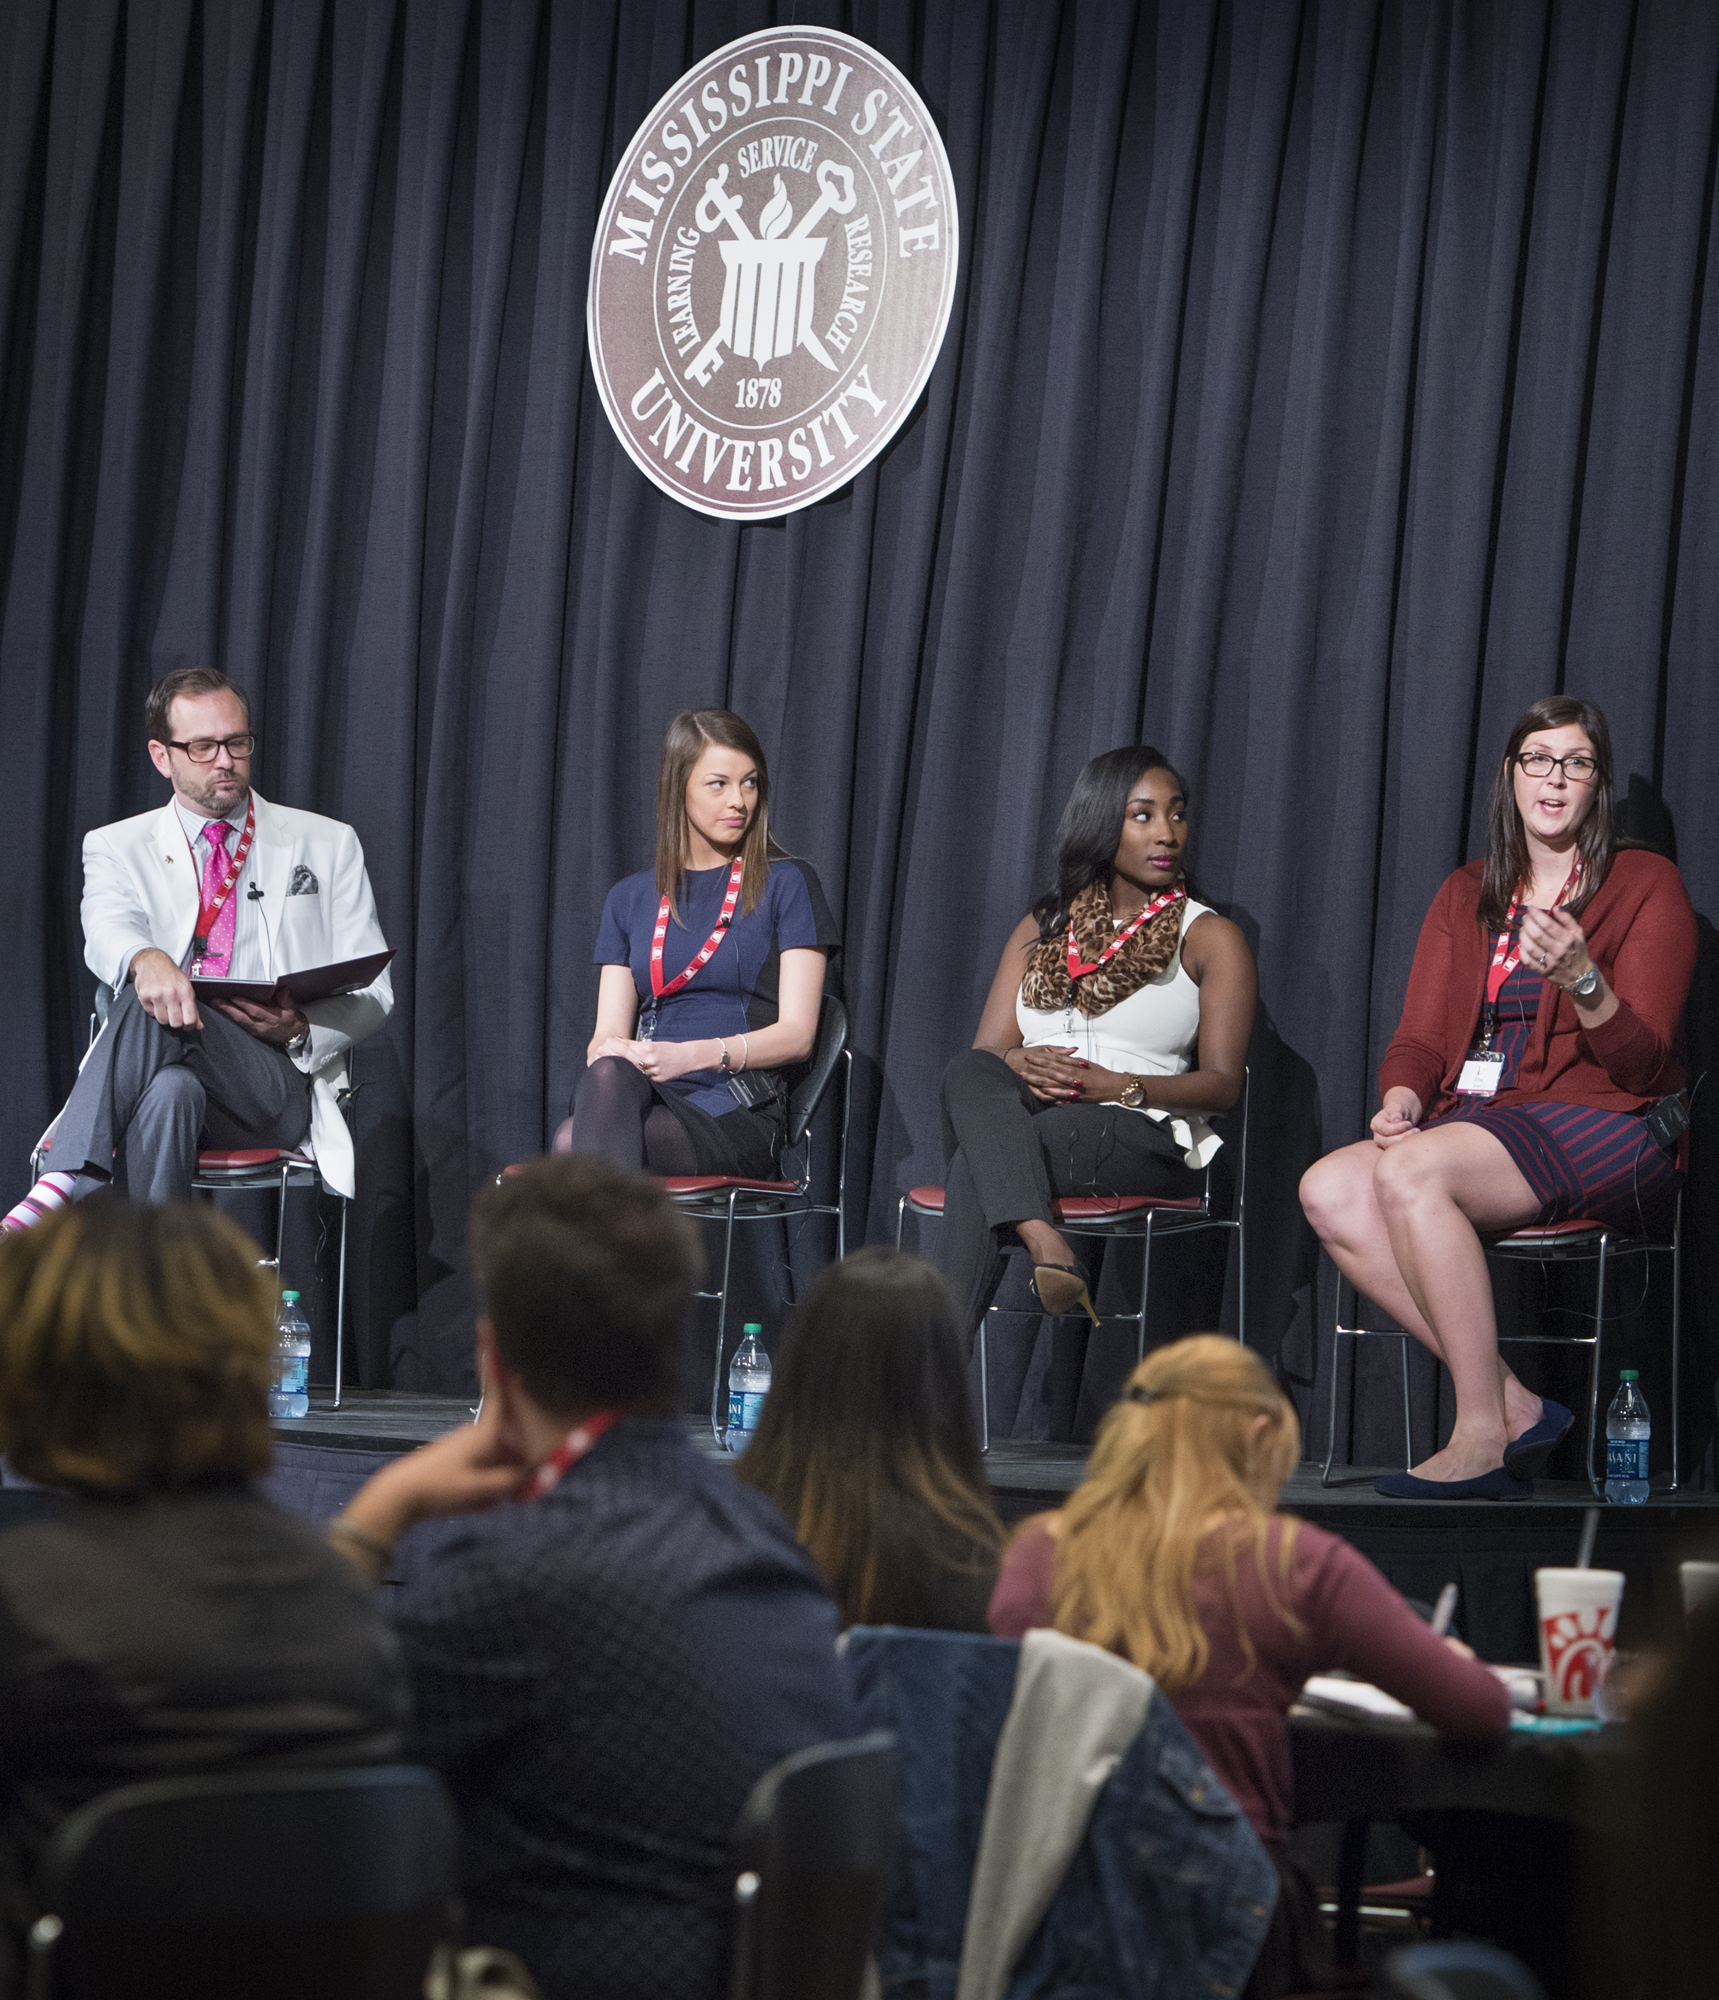 MSU alumni Caroline Gilbert, right, tells Mississippi State University fashion design and merchandising students how important mentors are at the Leadership Retail Program Conference on Thursday. Charles Freeman, MSU assistant professor, moderated the panel, which also included Caroline Gilbert, assistant customer experience manager at Nordstrom and Shaquayla Mims, coordinator of student initiative for National Retail Federation.